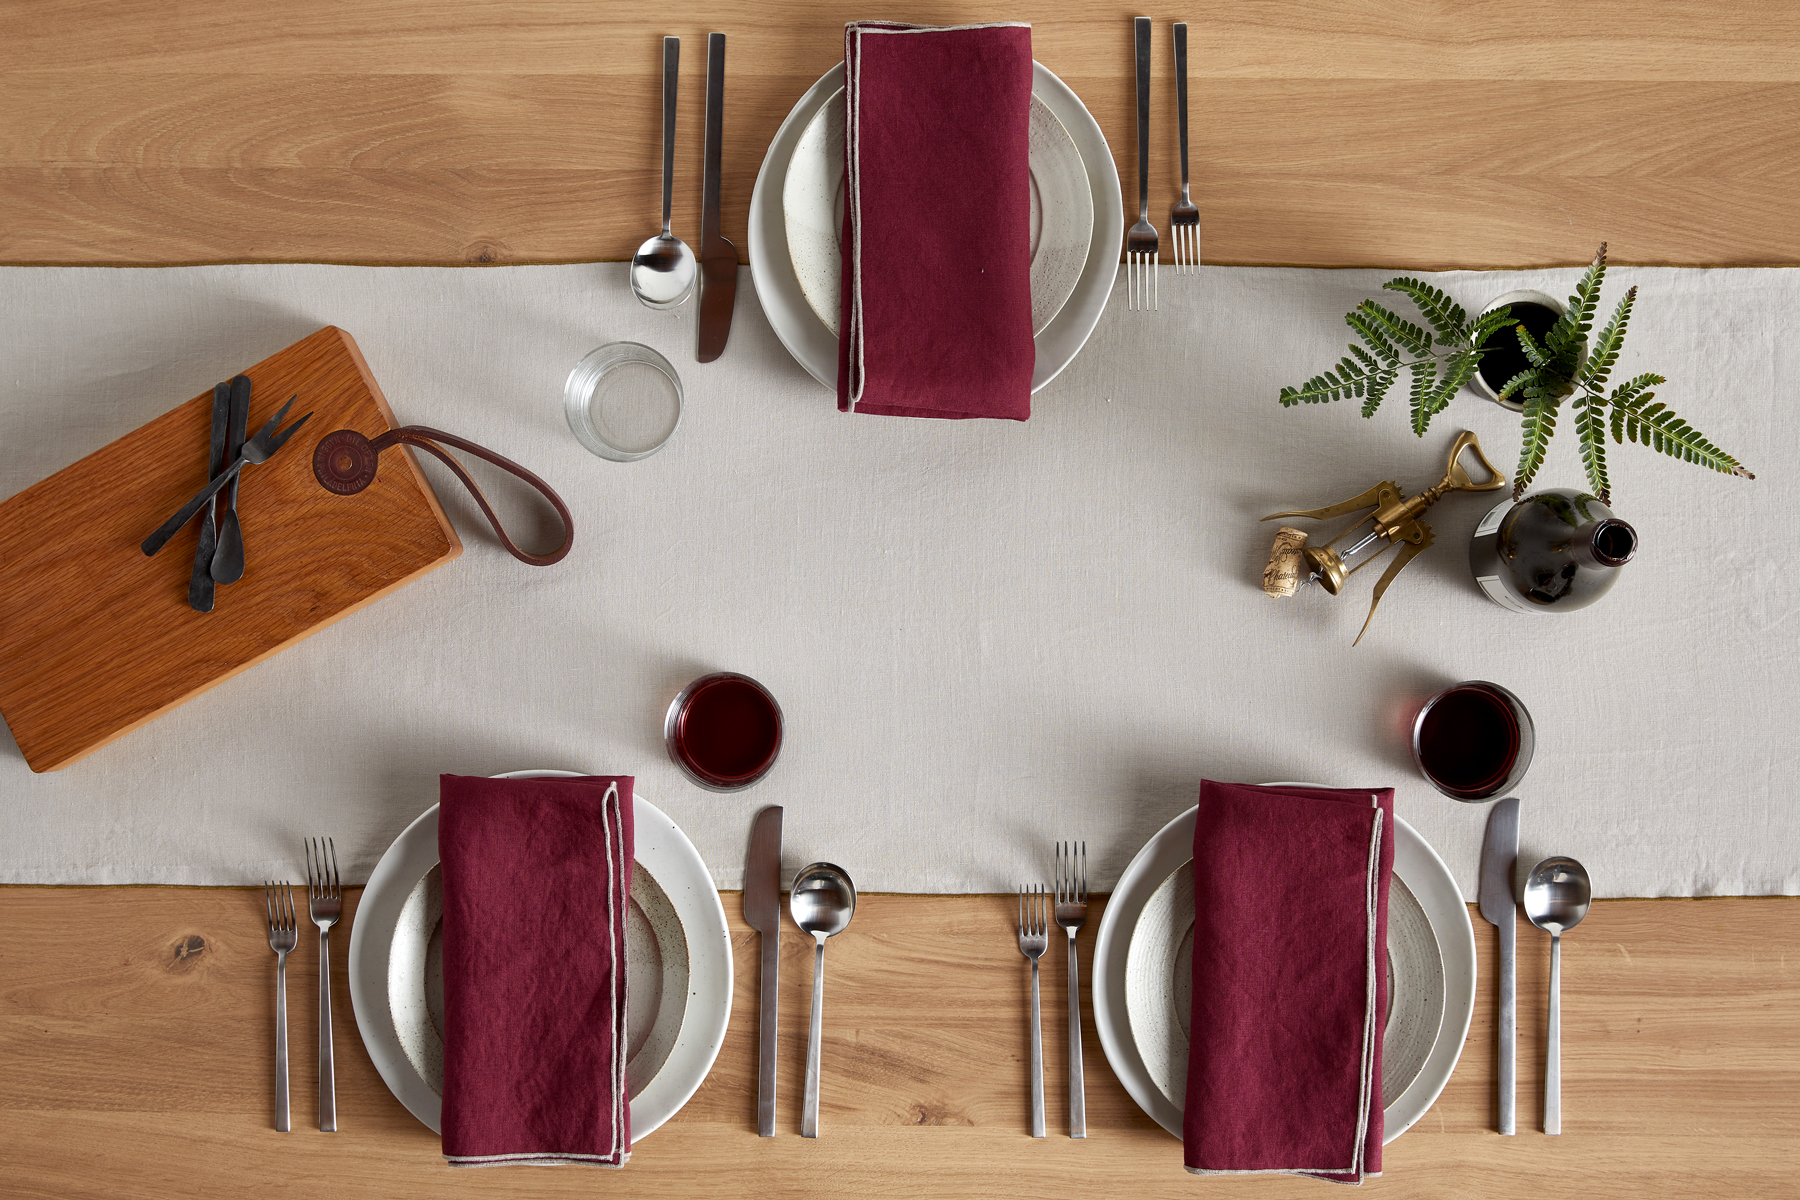 table setting with beige table runner and burgundy napkins